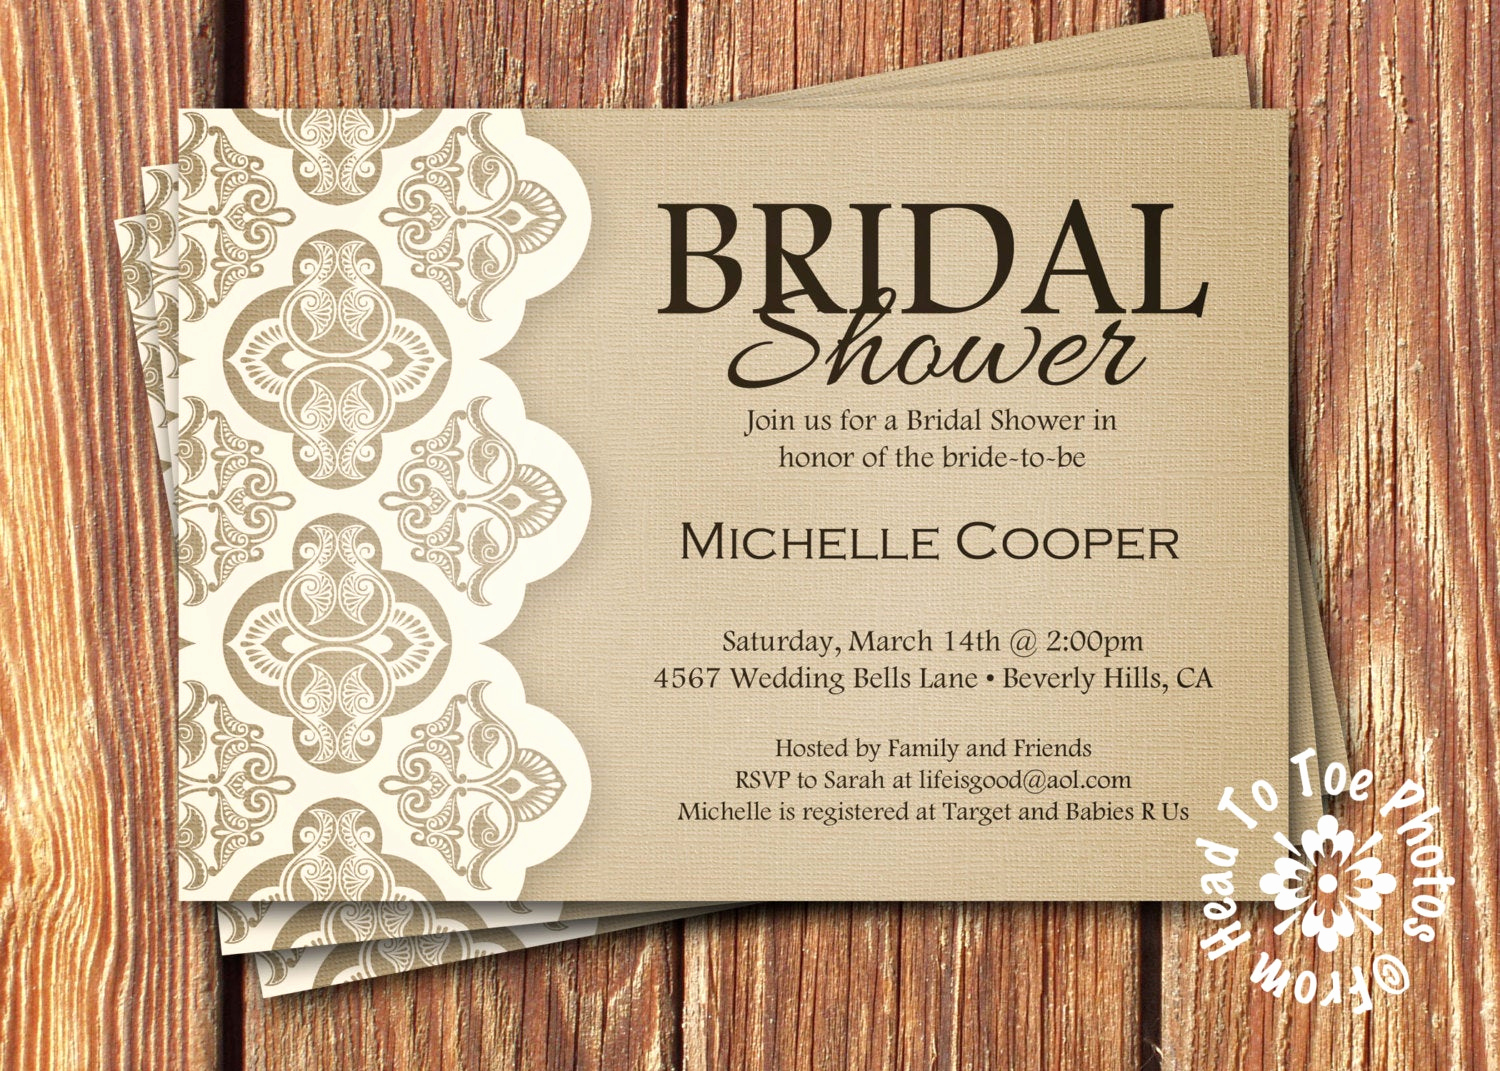 Bridal Shower Invitation Poems Inspirational Shabby Chic Bridal Shower Invitations by Fromheadtotoedesigns